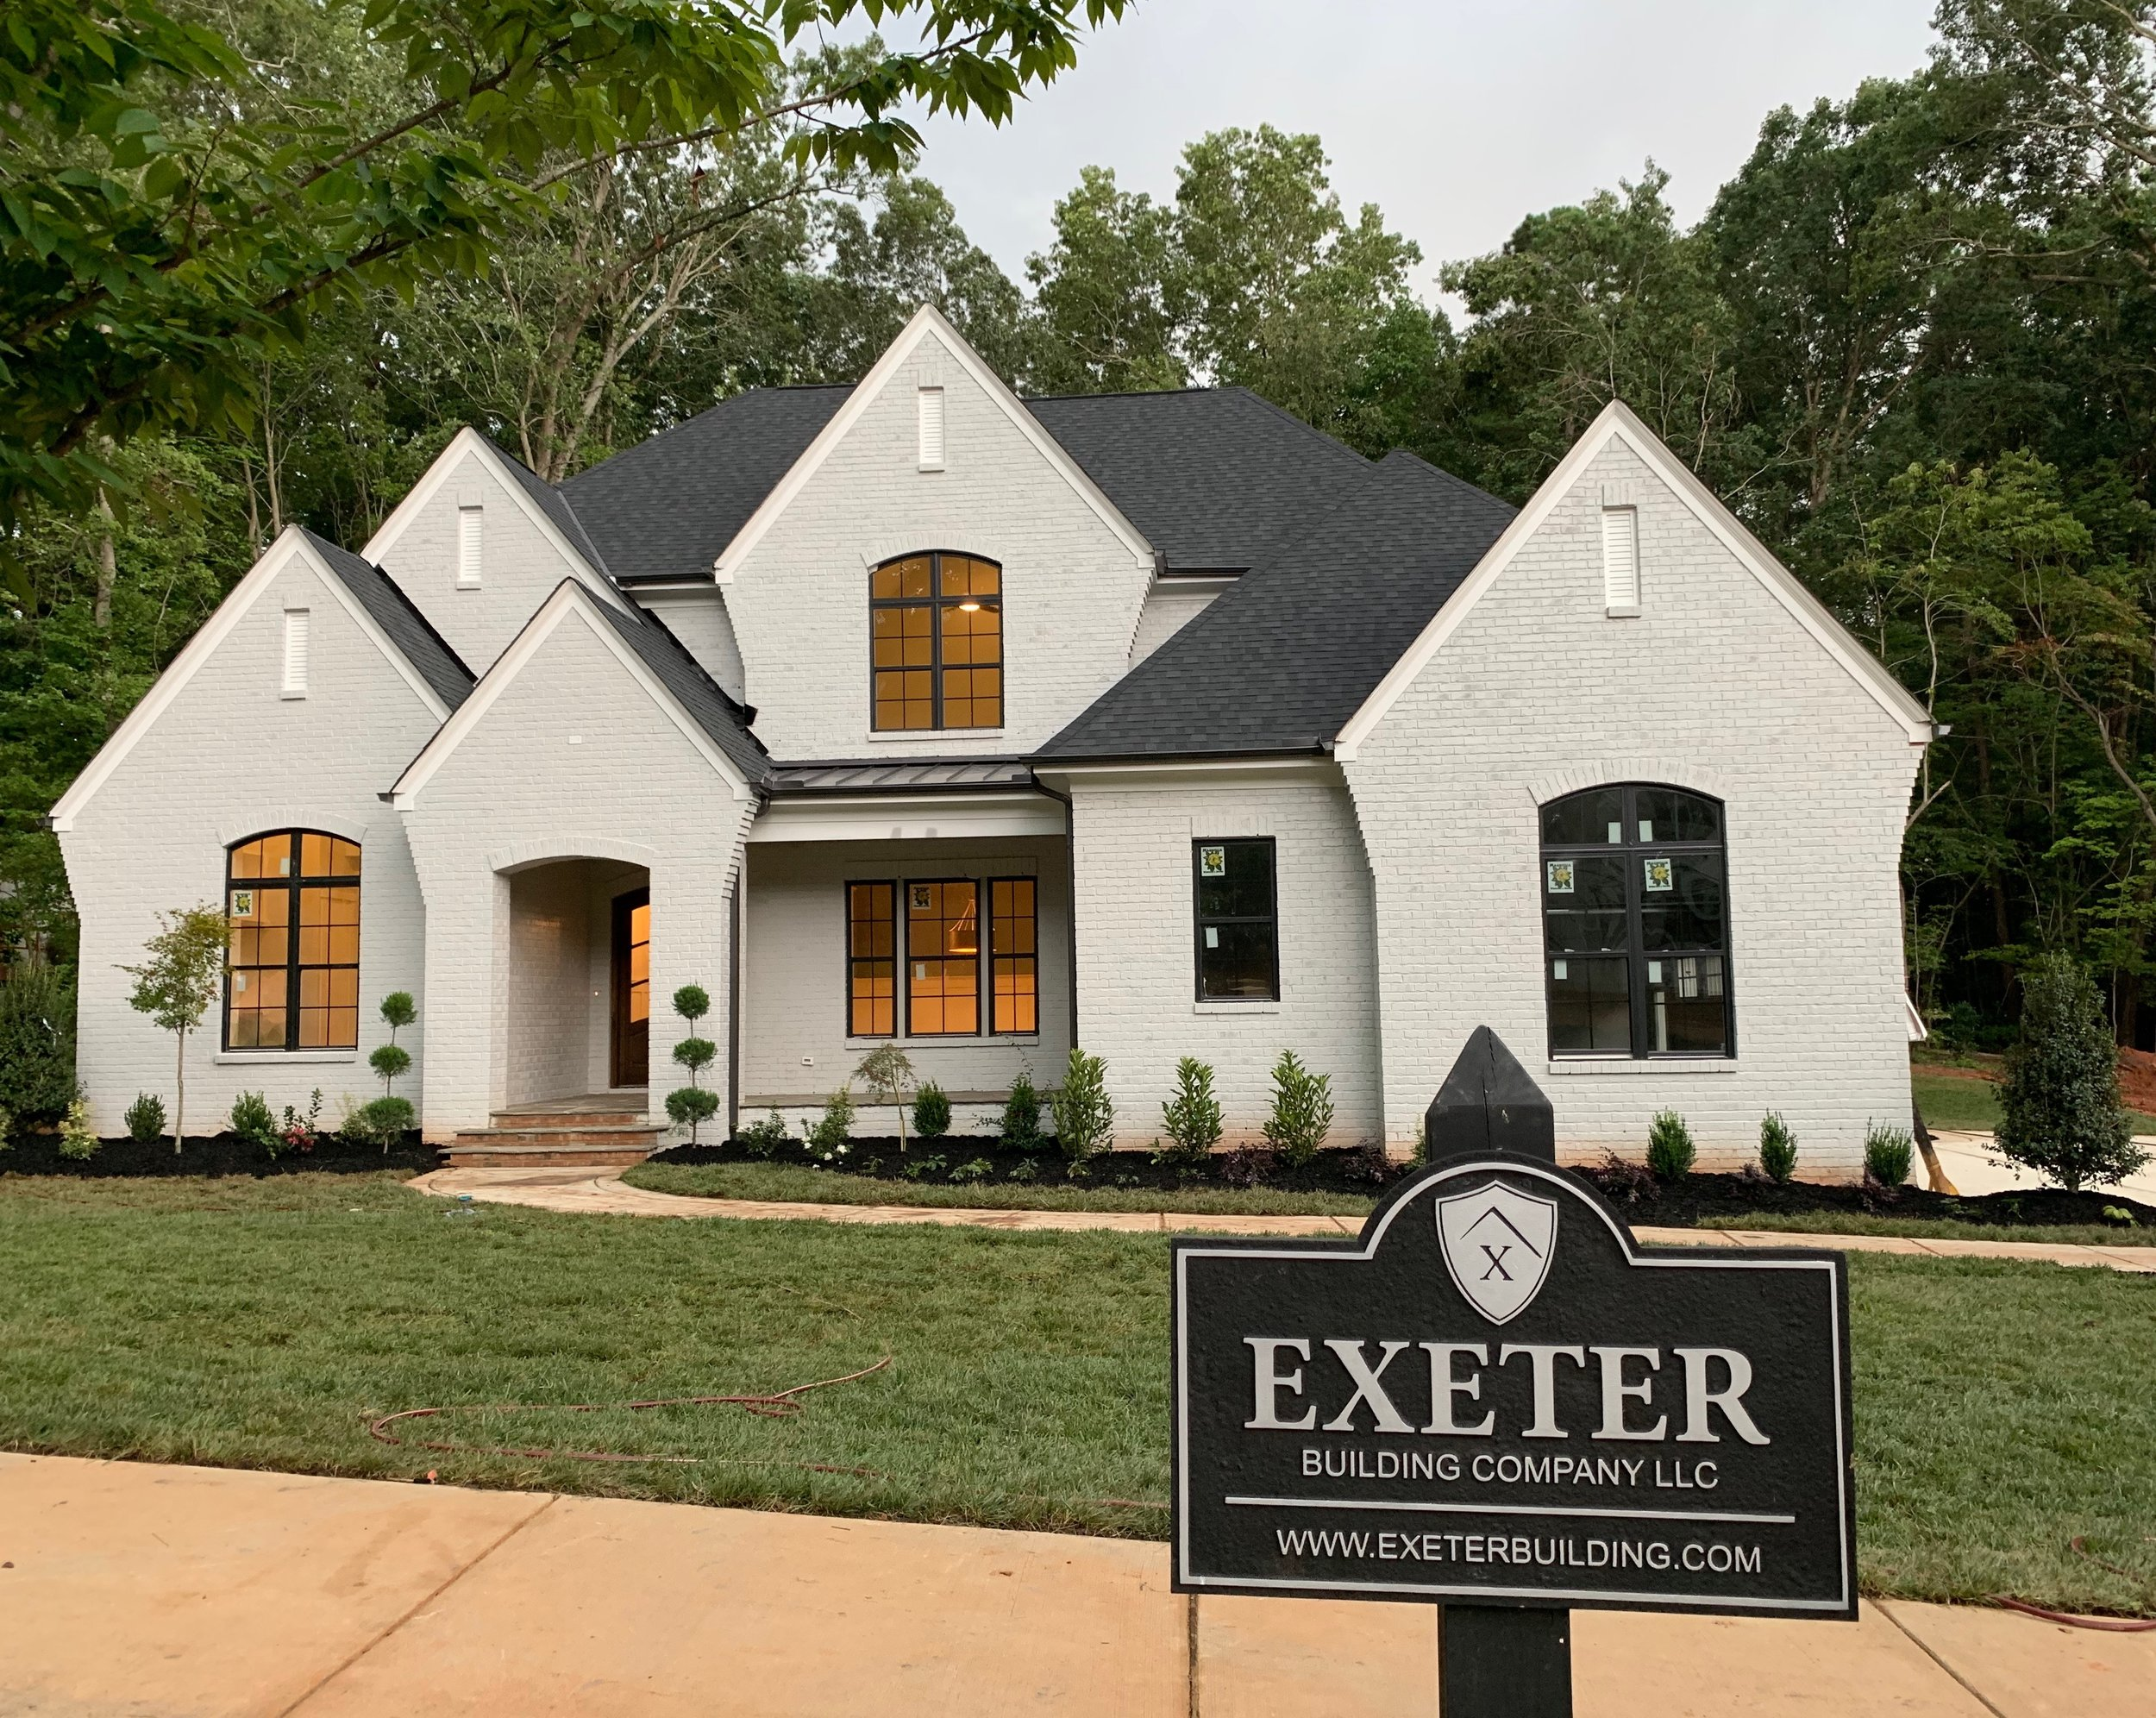 Downtown Raleigh - ITB - 3513 Catalano Place - Luxury Custom Homes built by Exeter Building Company